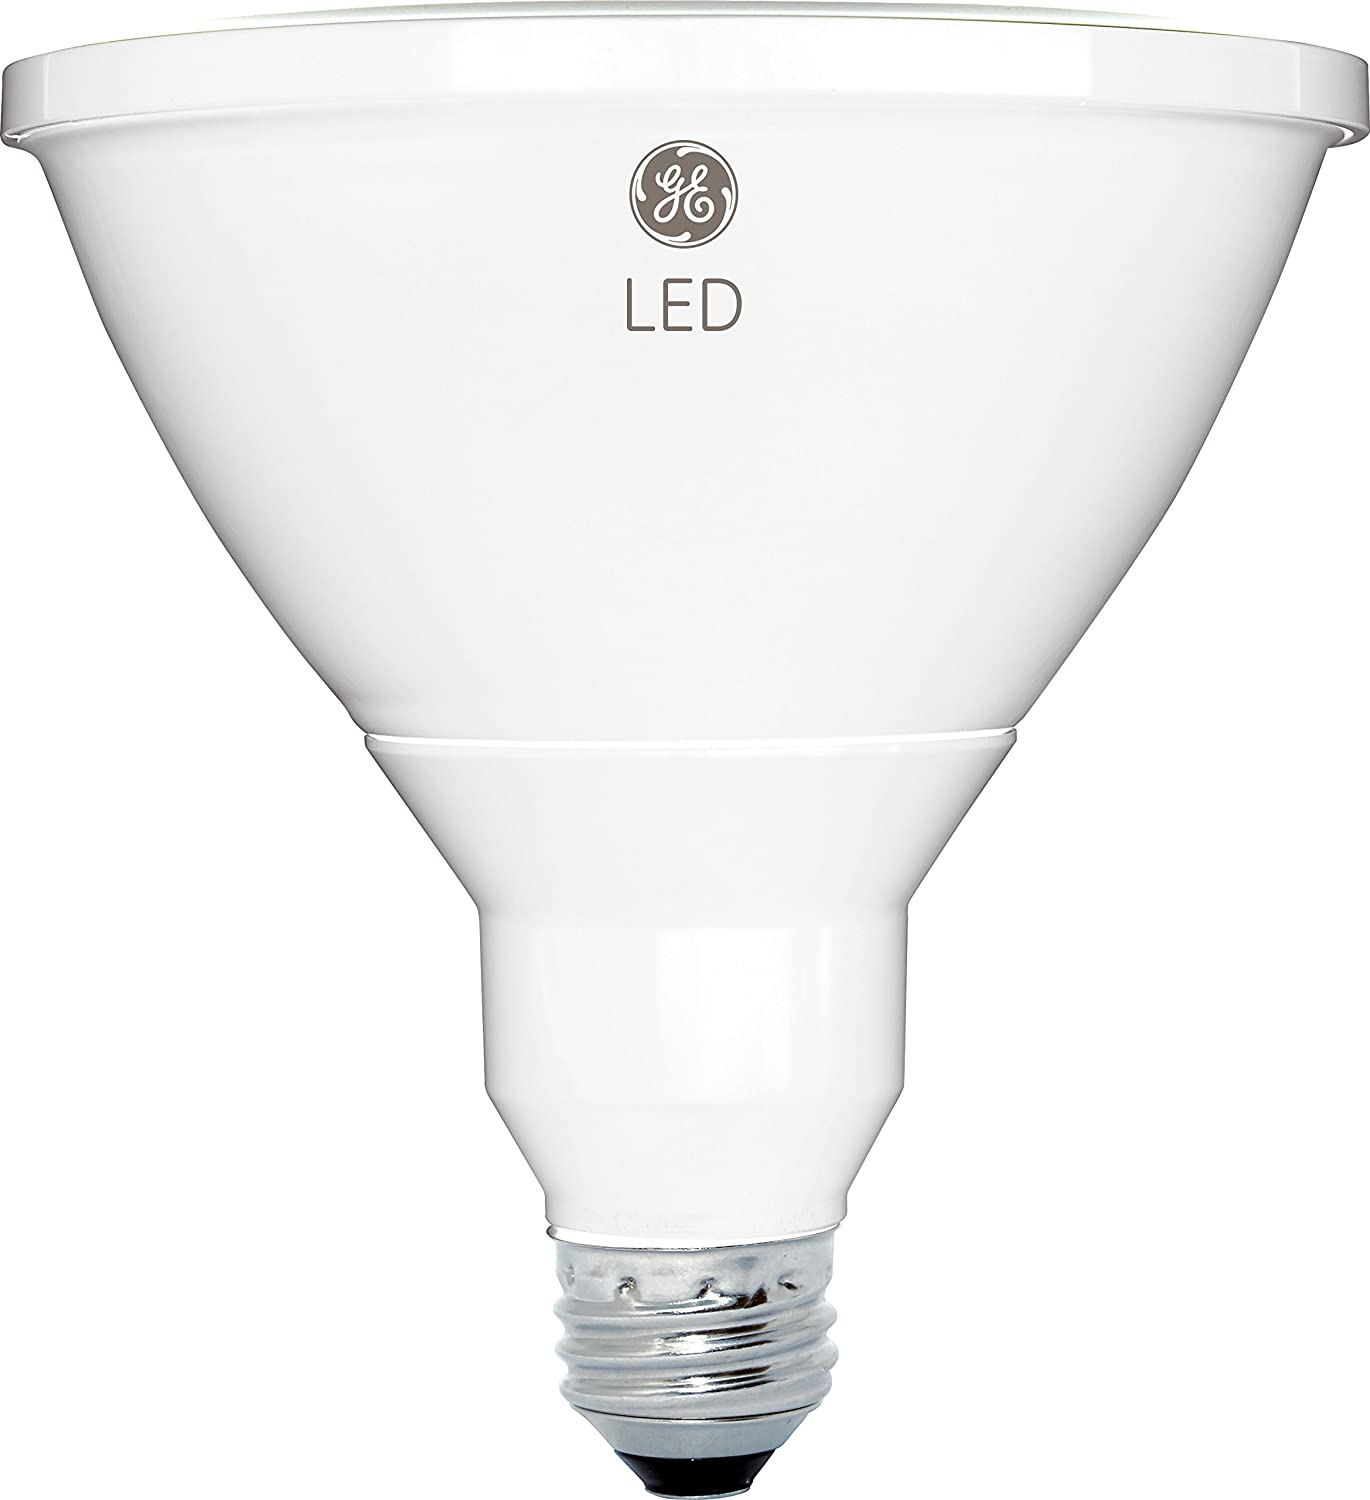 GE Lighting 13187 LED 15-watt (90-watt replacement), 1300-Lumen PAR38 Outdoor Floodlight Mono-Fresnel, Bright White